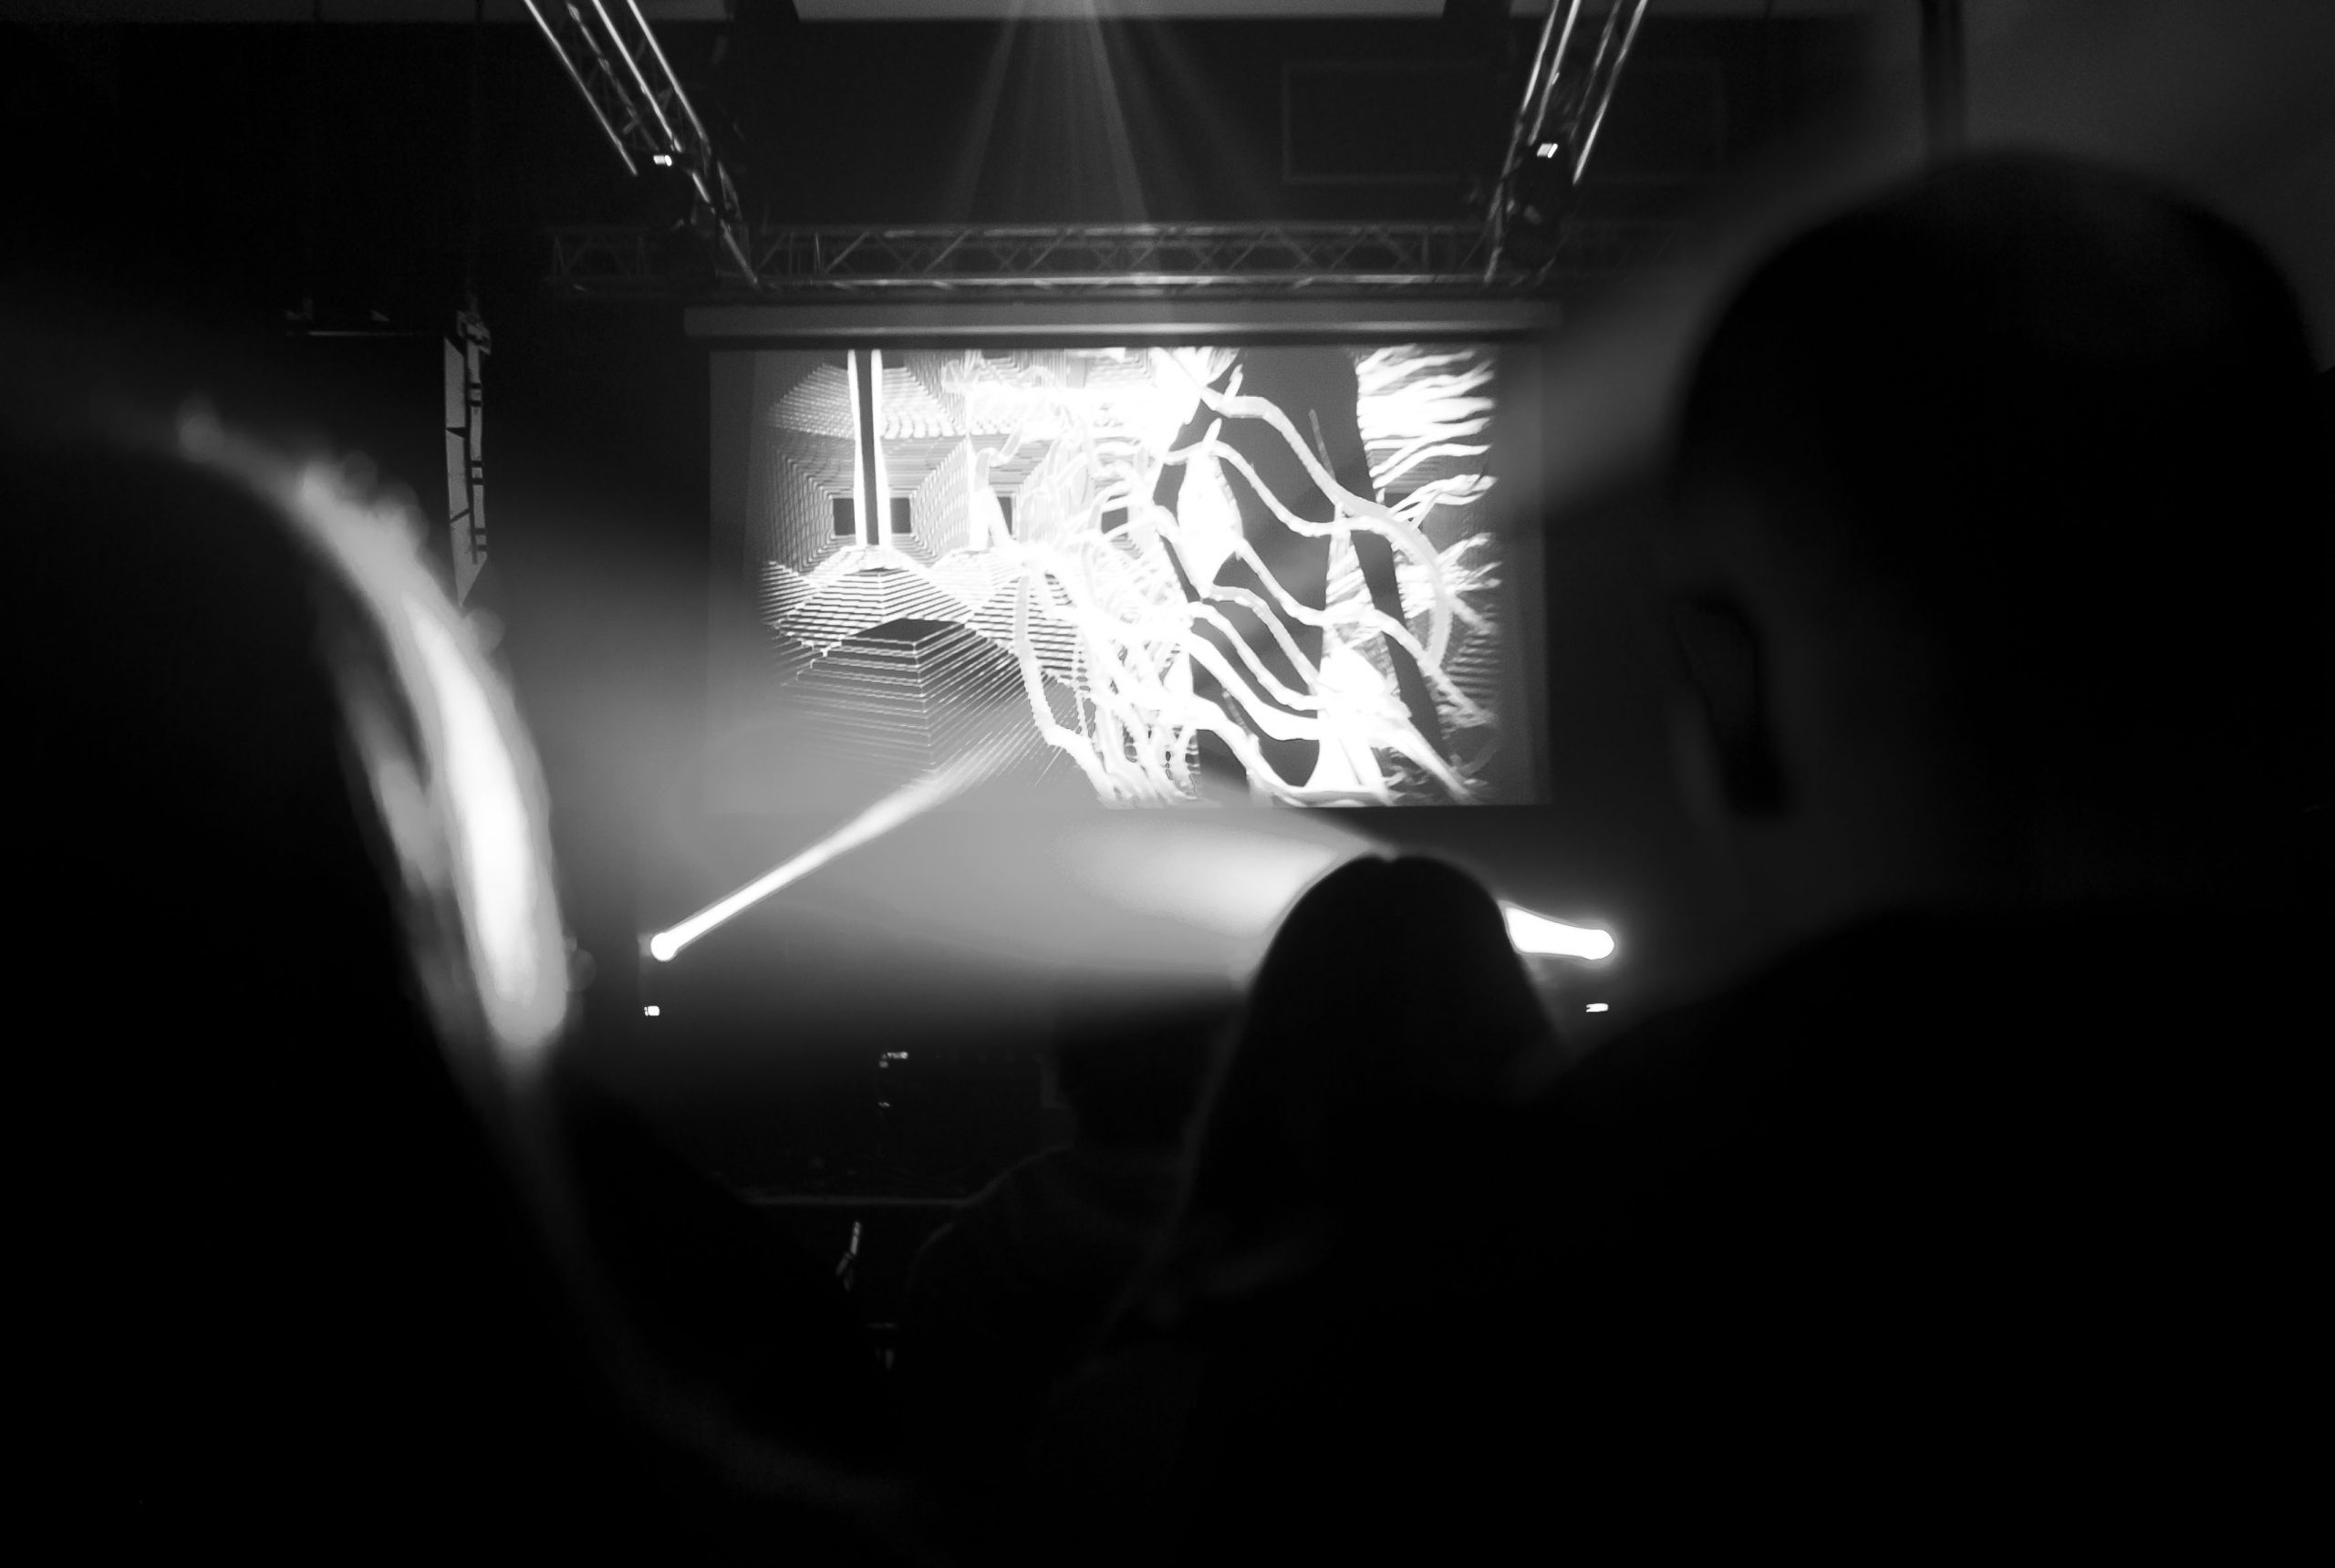 An abstract black-and-white photograph of a performance, with a screen beaming visuals towards an audience.